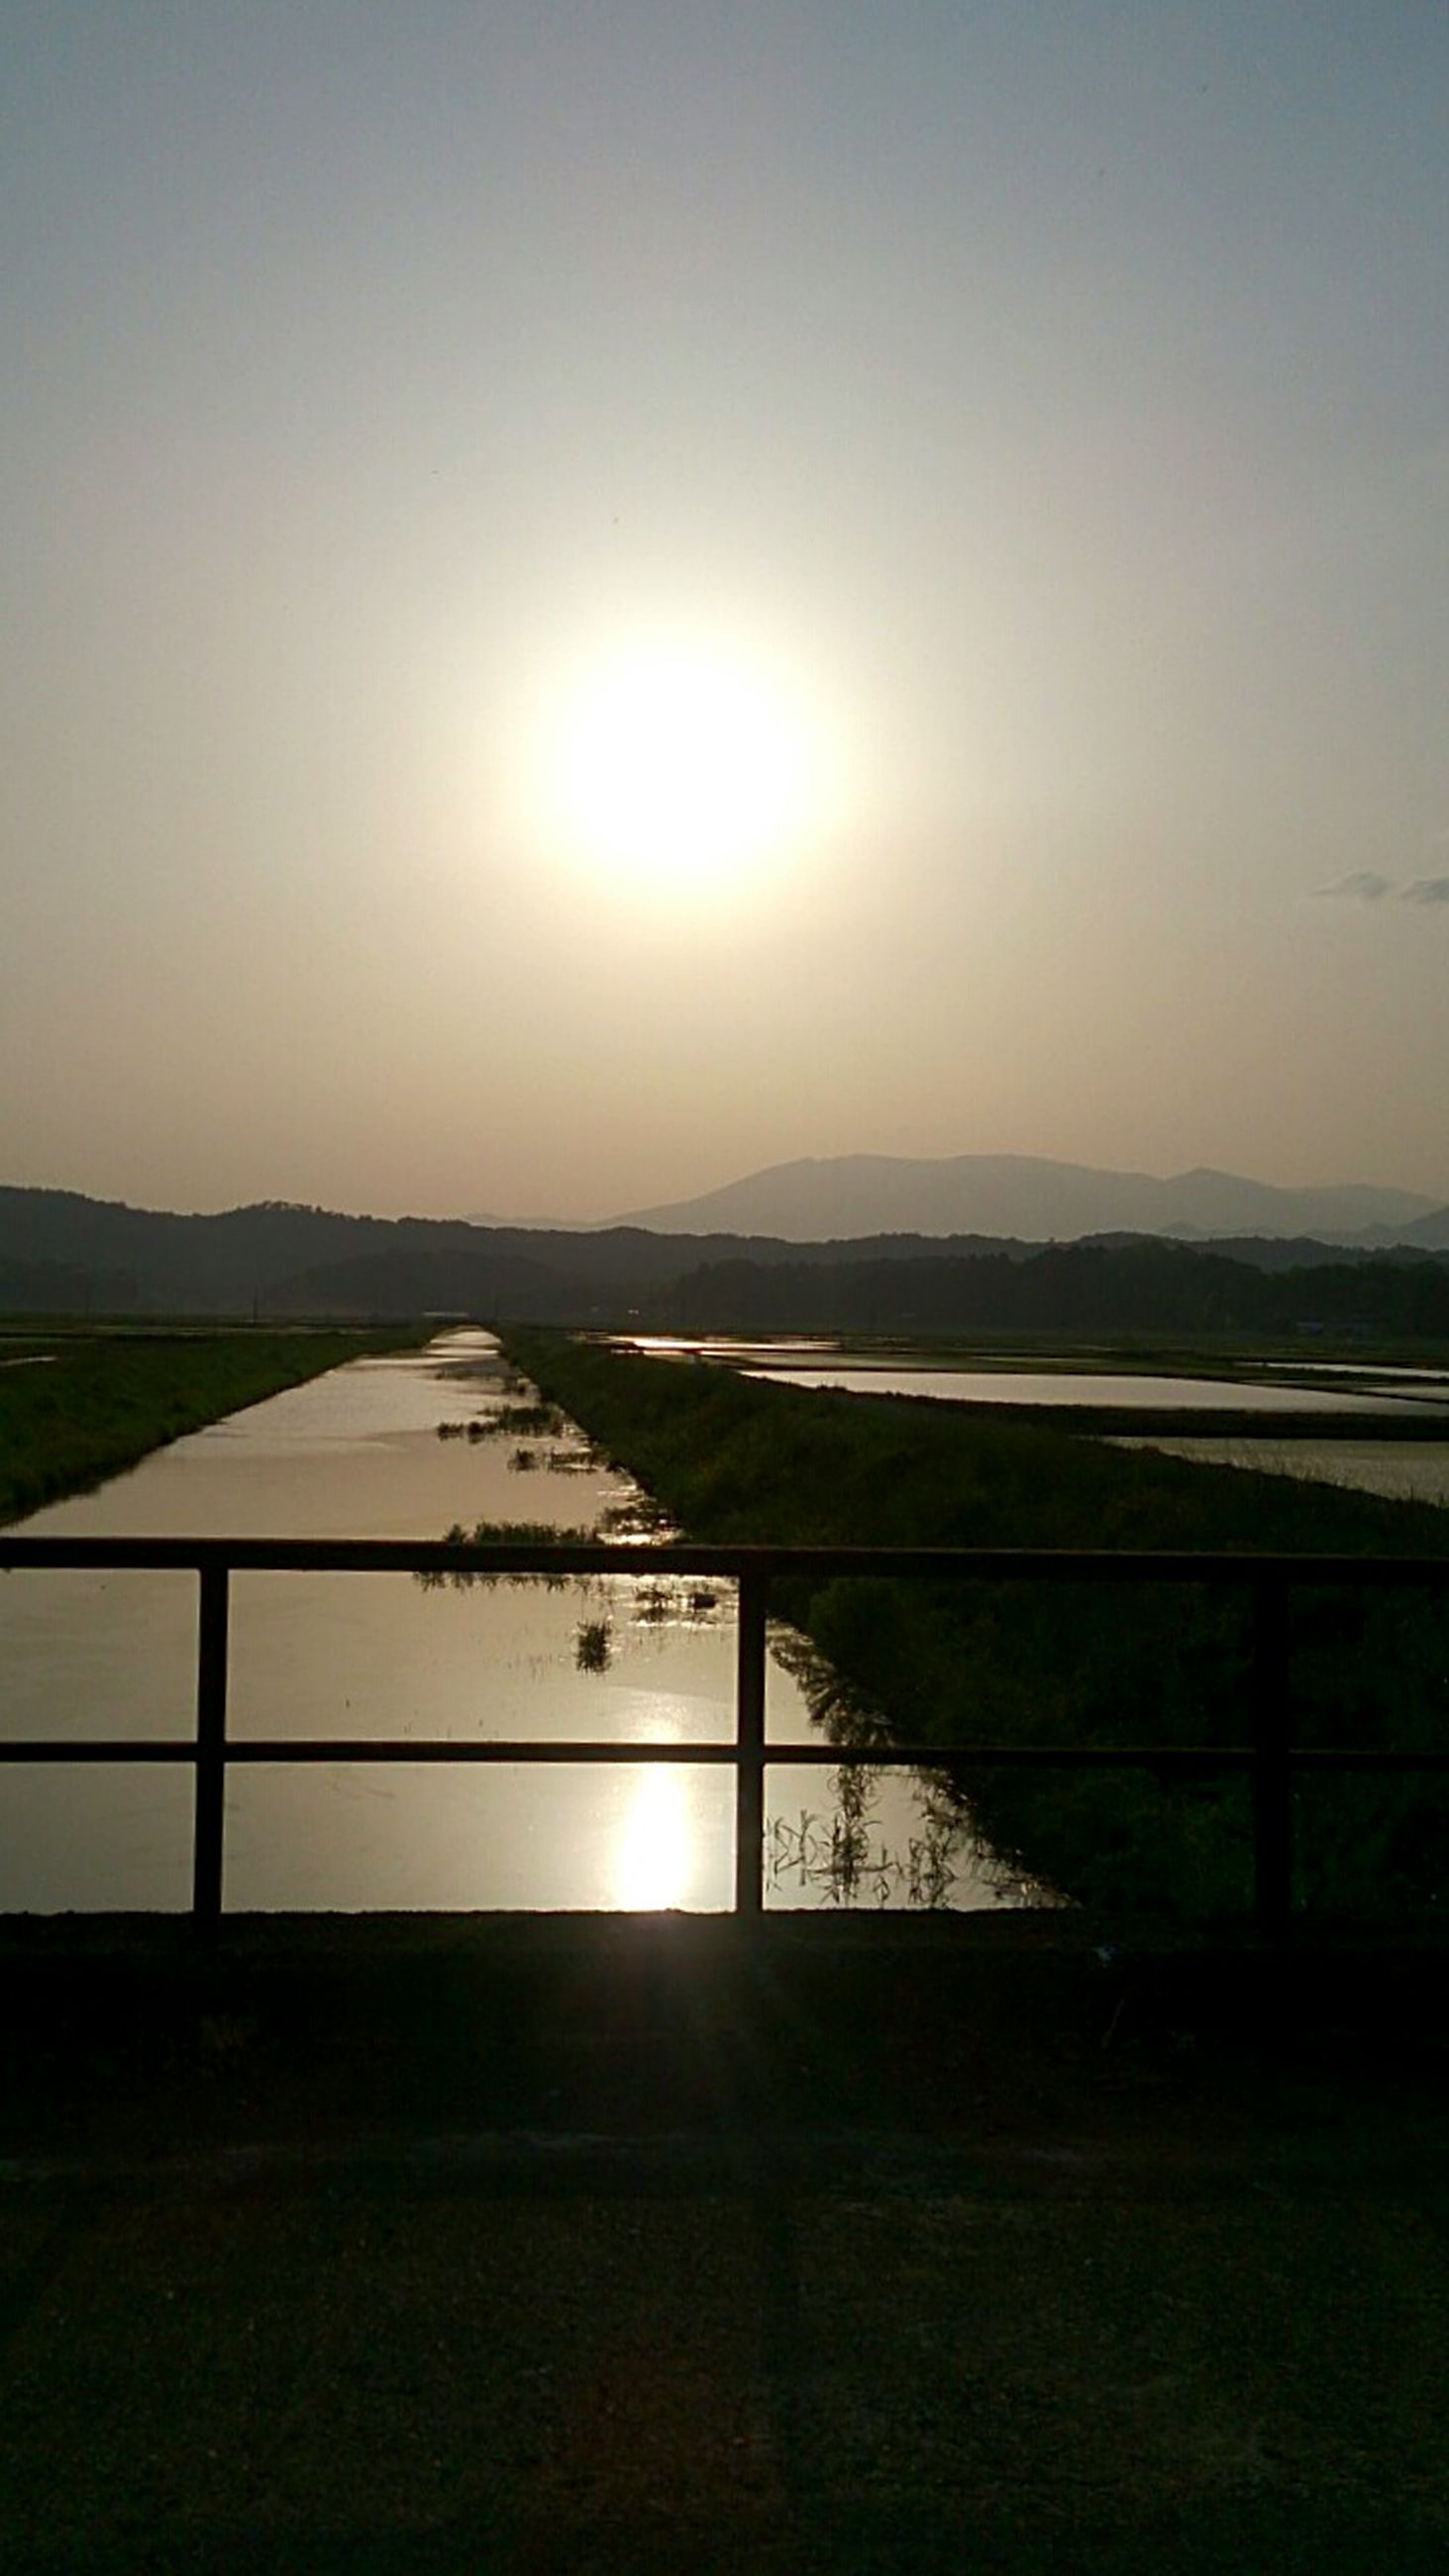 sun, tranquil scene, tranquility, scenics, water, sunset, beauty in nature, sunlight, railing, clear sky, nature, landscape, lake, sky, idyllic, copy space, grass, river, field, mountain